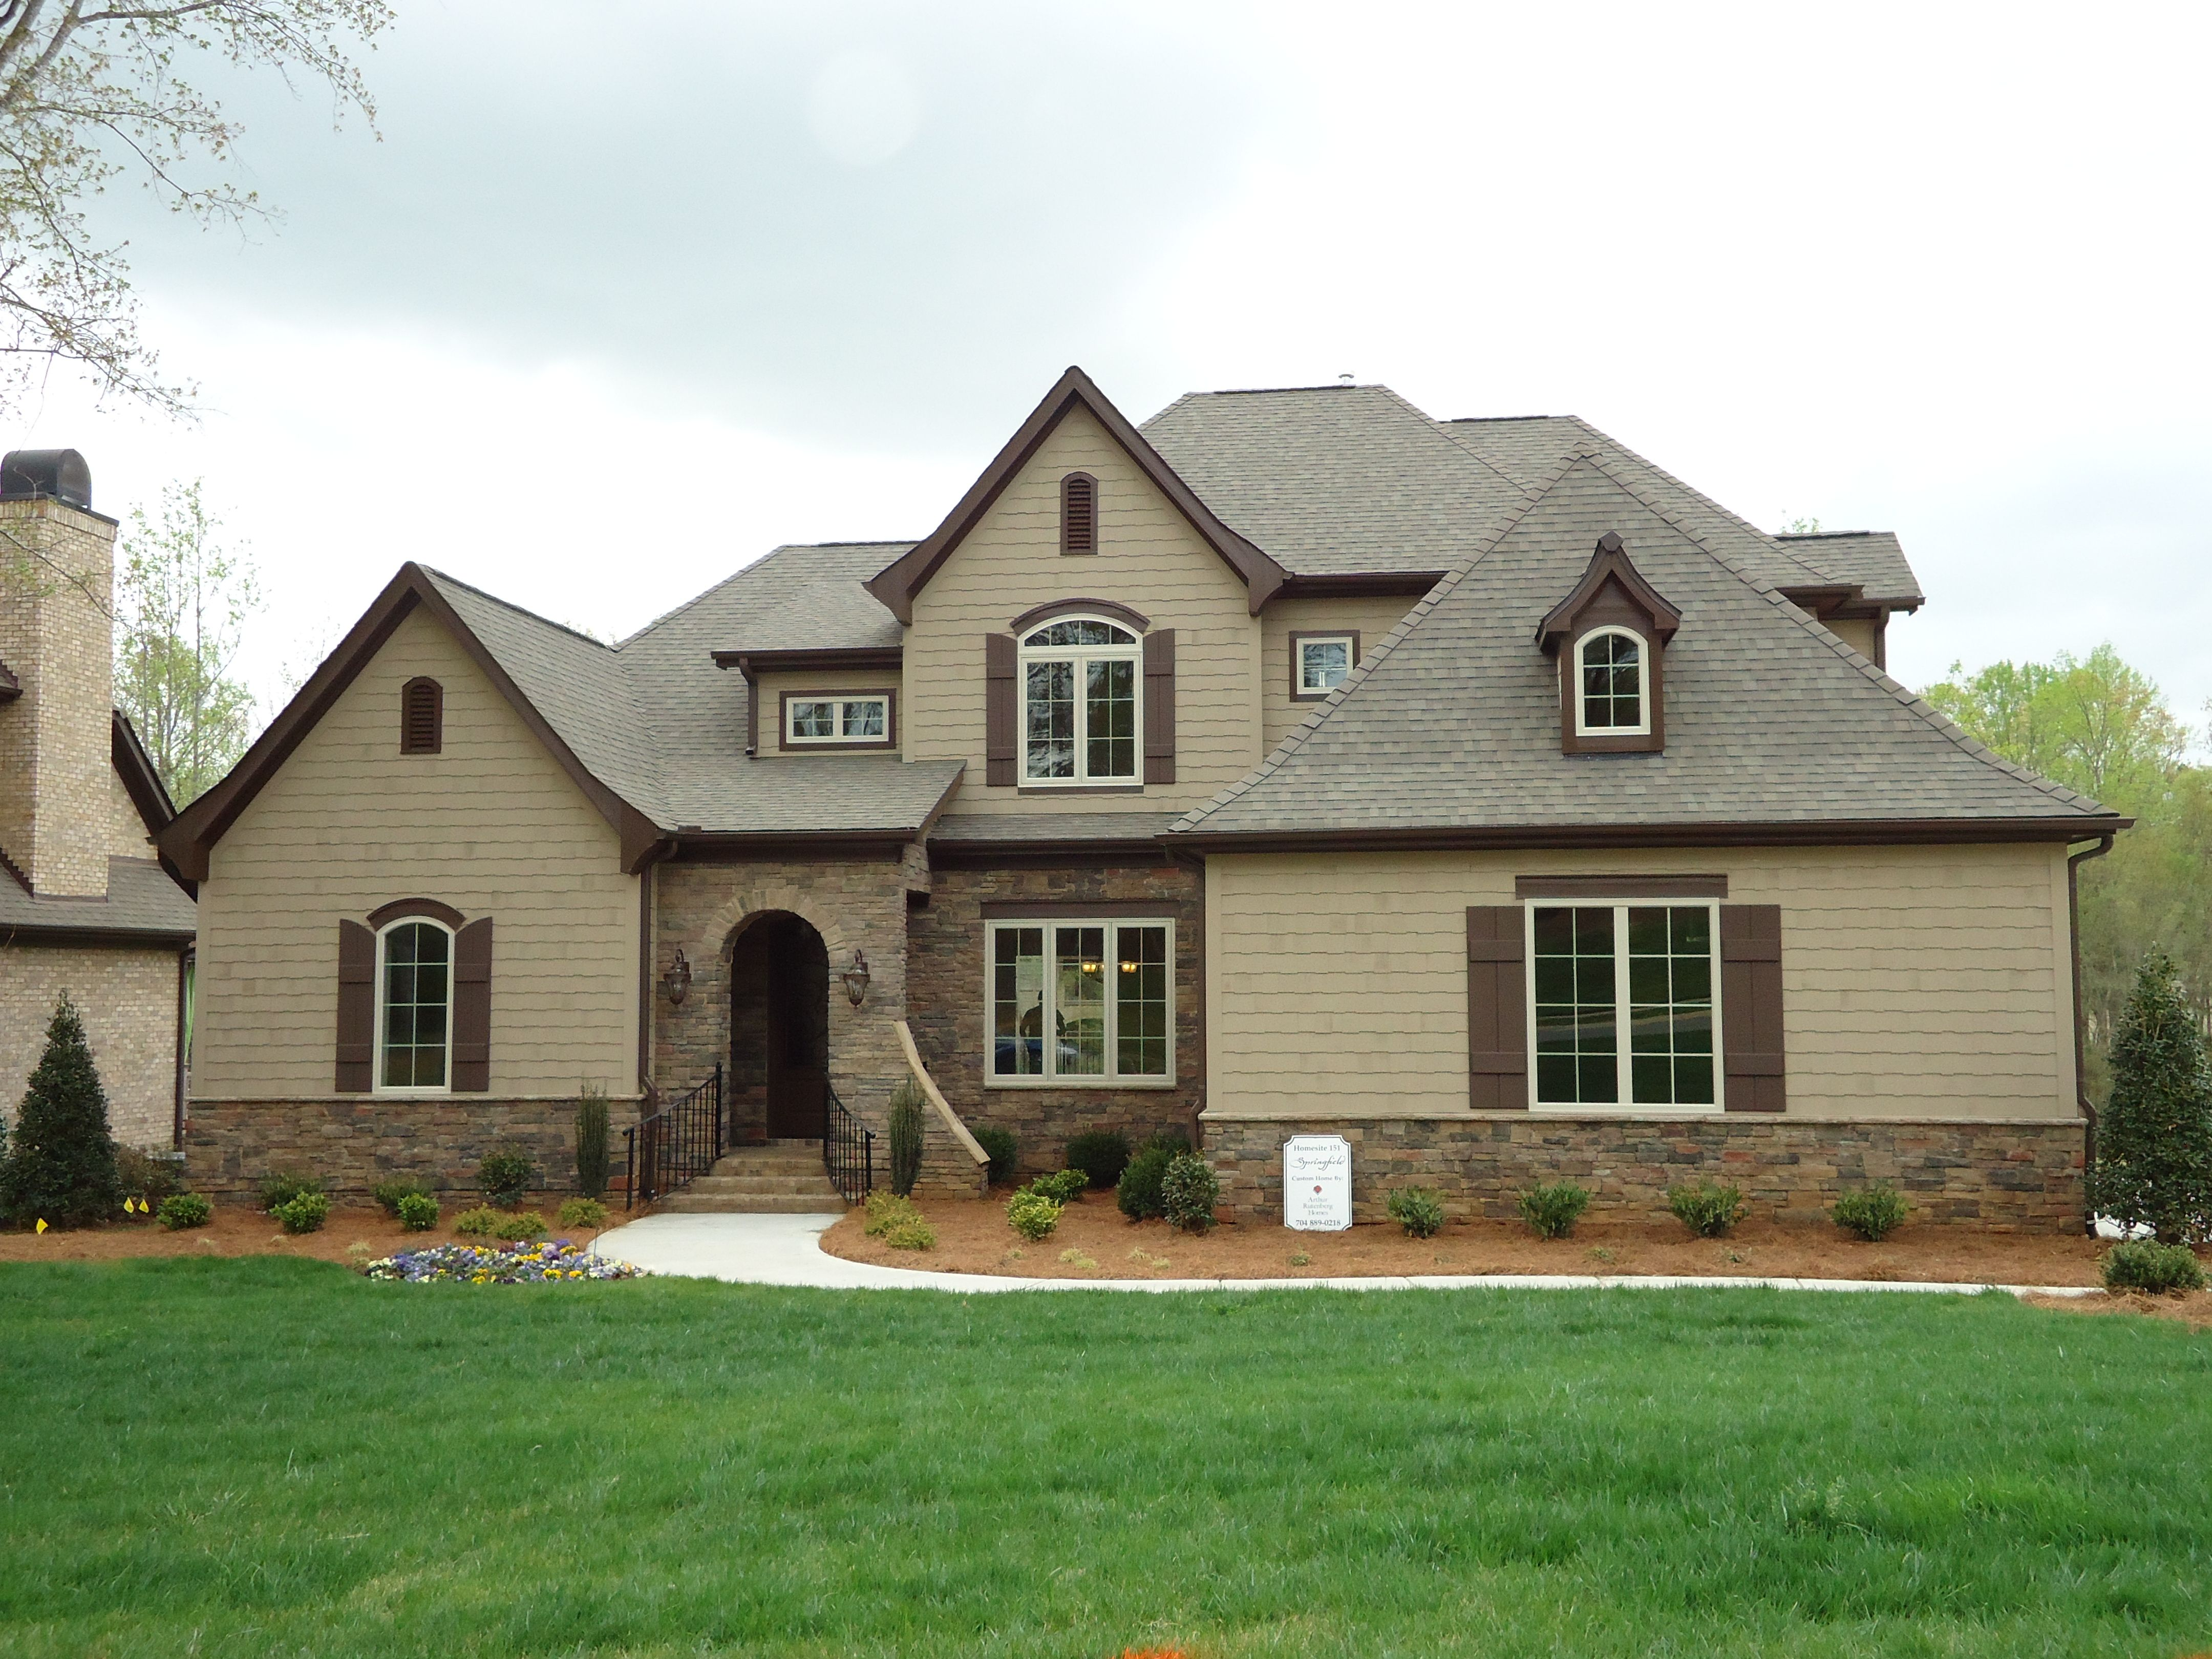 Best Arh Saddlebrook Plan 1160F Exterior 7 Roof Owens 400 x 300